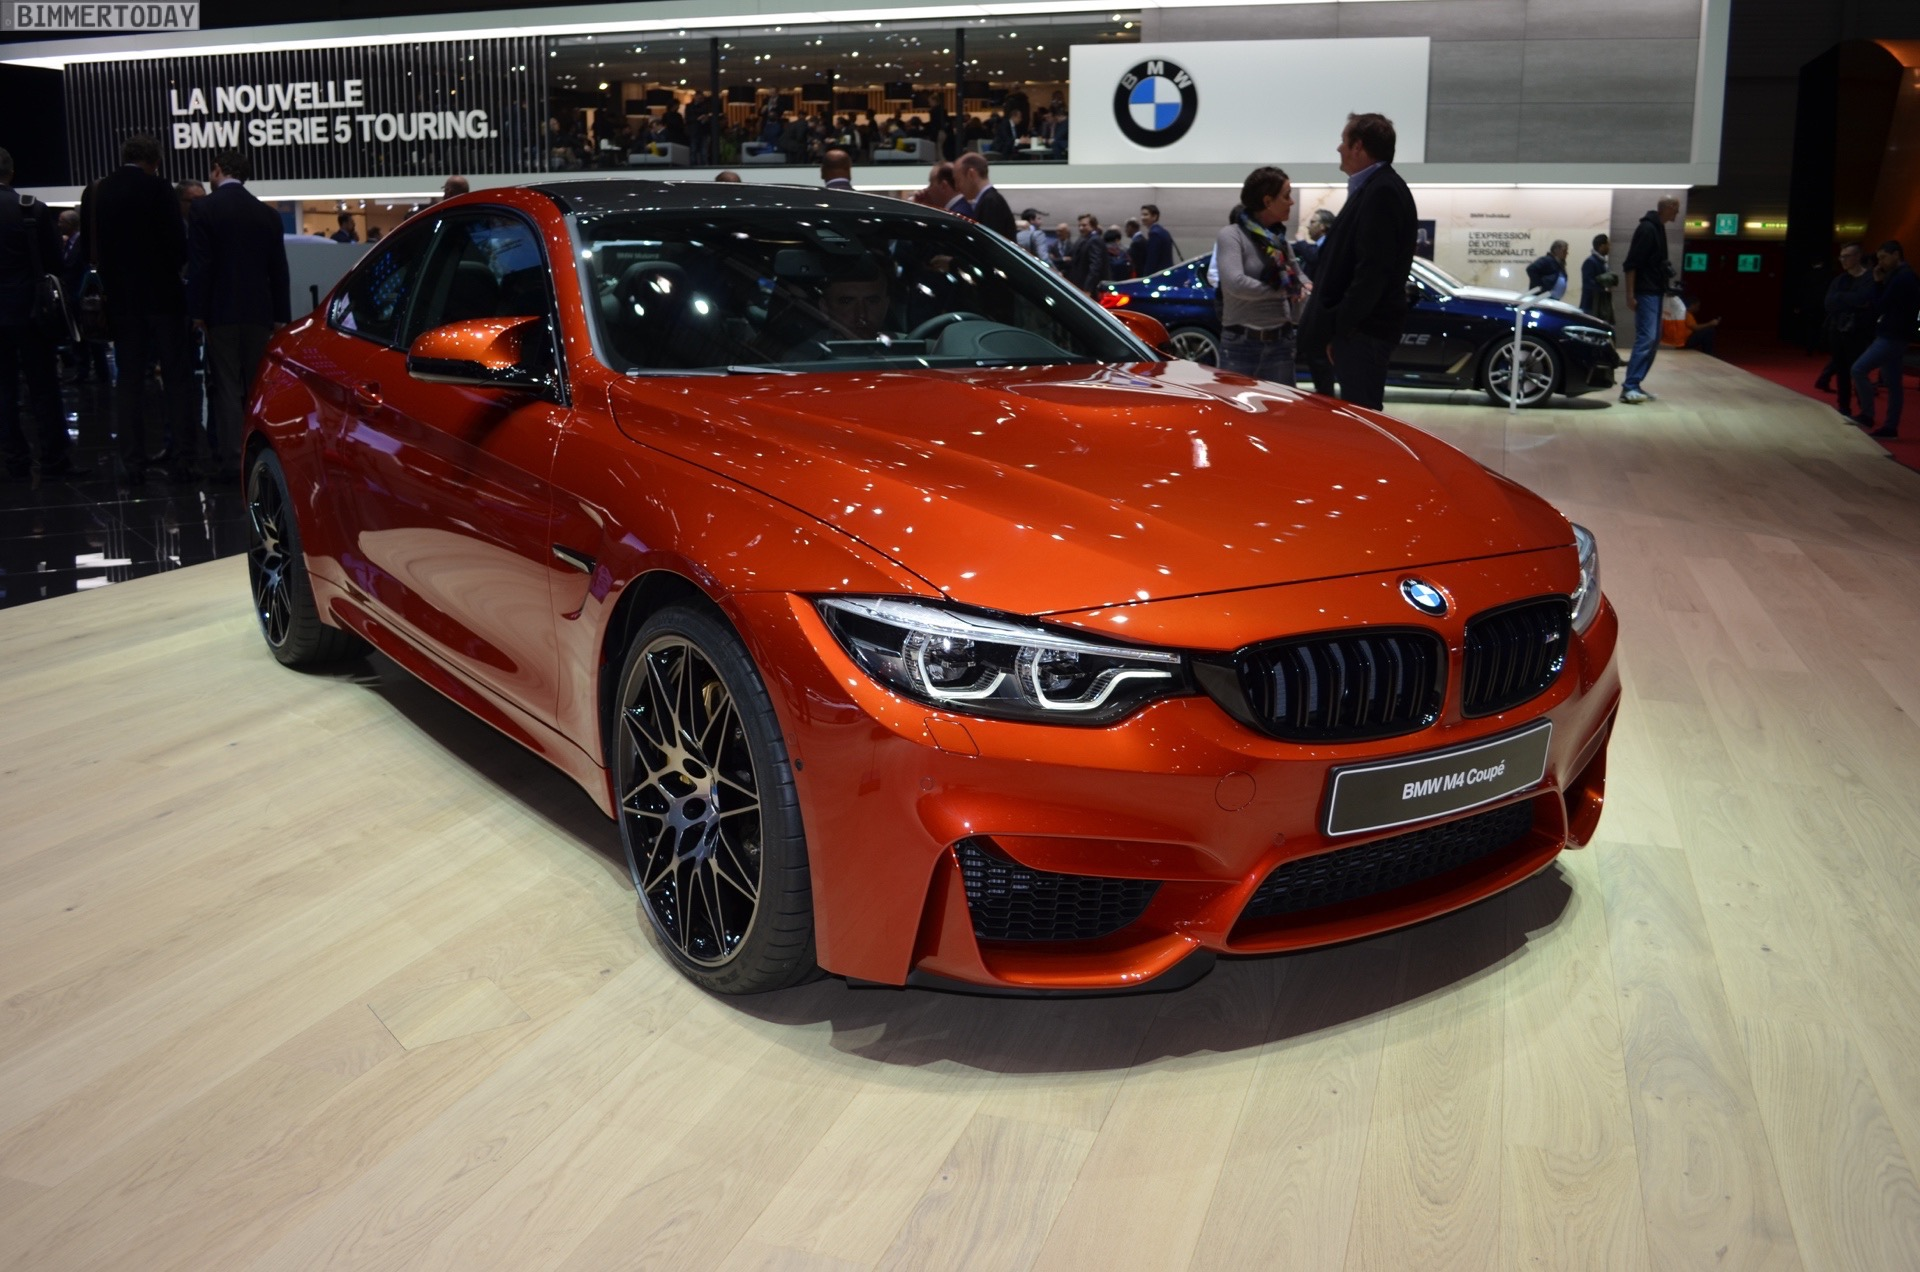 2017 BMW M4 F82 LCI Facelift Competition Coupe Sakhir Orange Genf Live 25